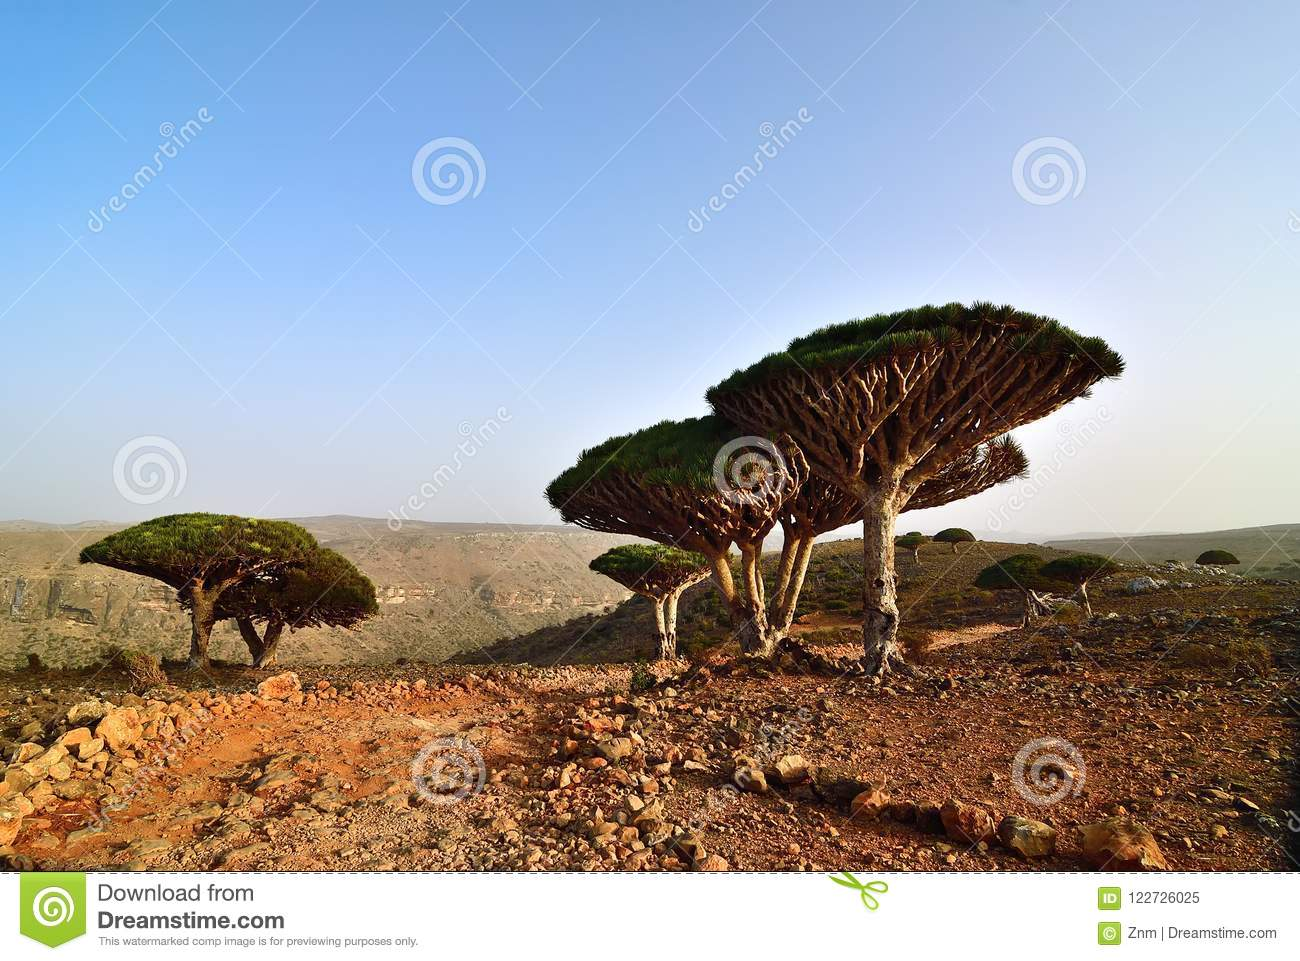 Árvores do sangue de dragão, Socotra, Iémen